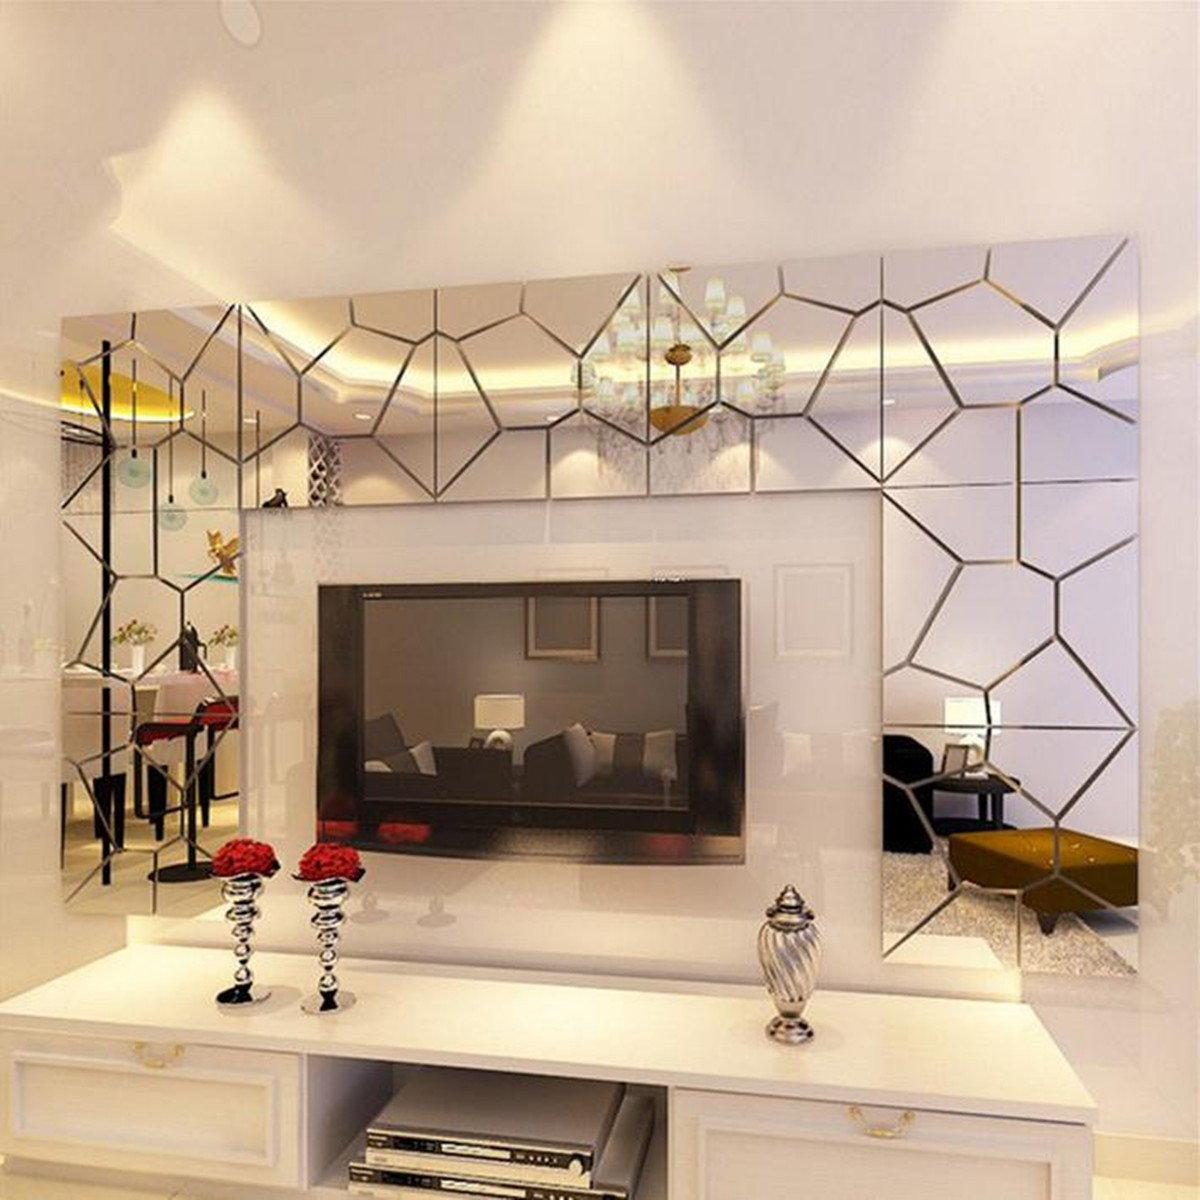 7-35PCS 3D Acrylic Removable Modern Mirror Decal Art Mural Wall Sticker Home Room Decor DIY